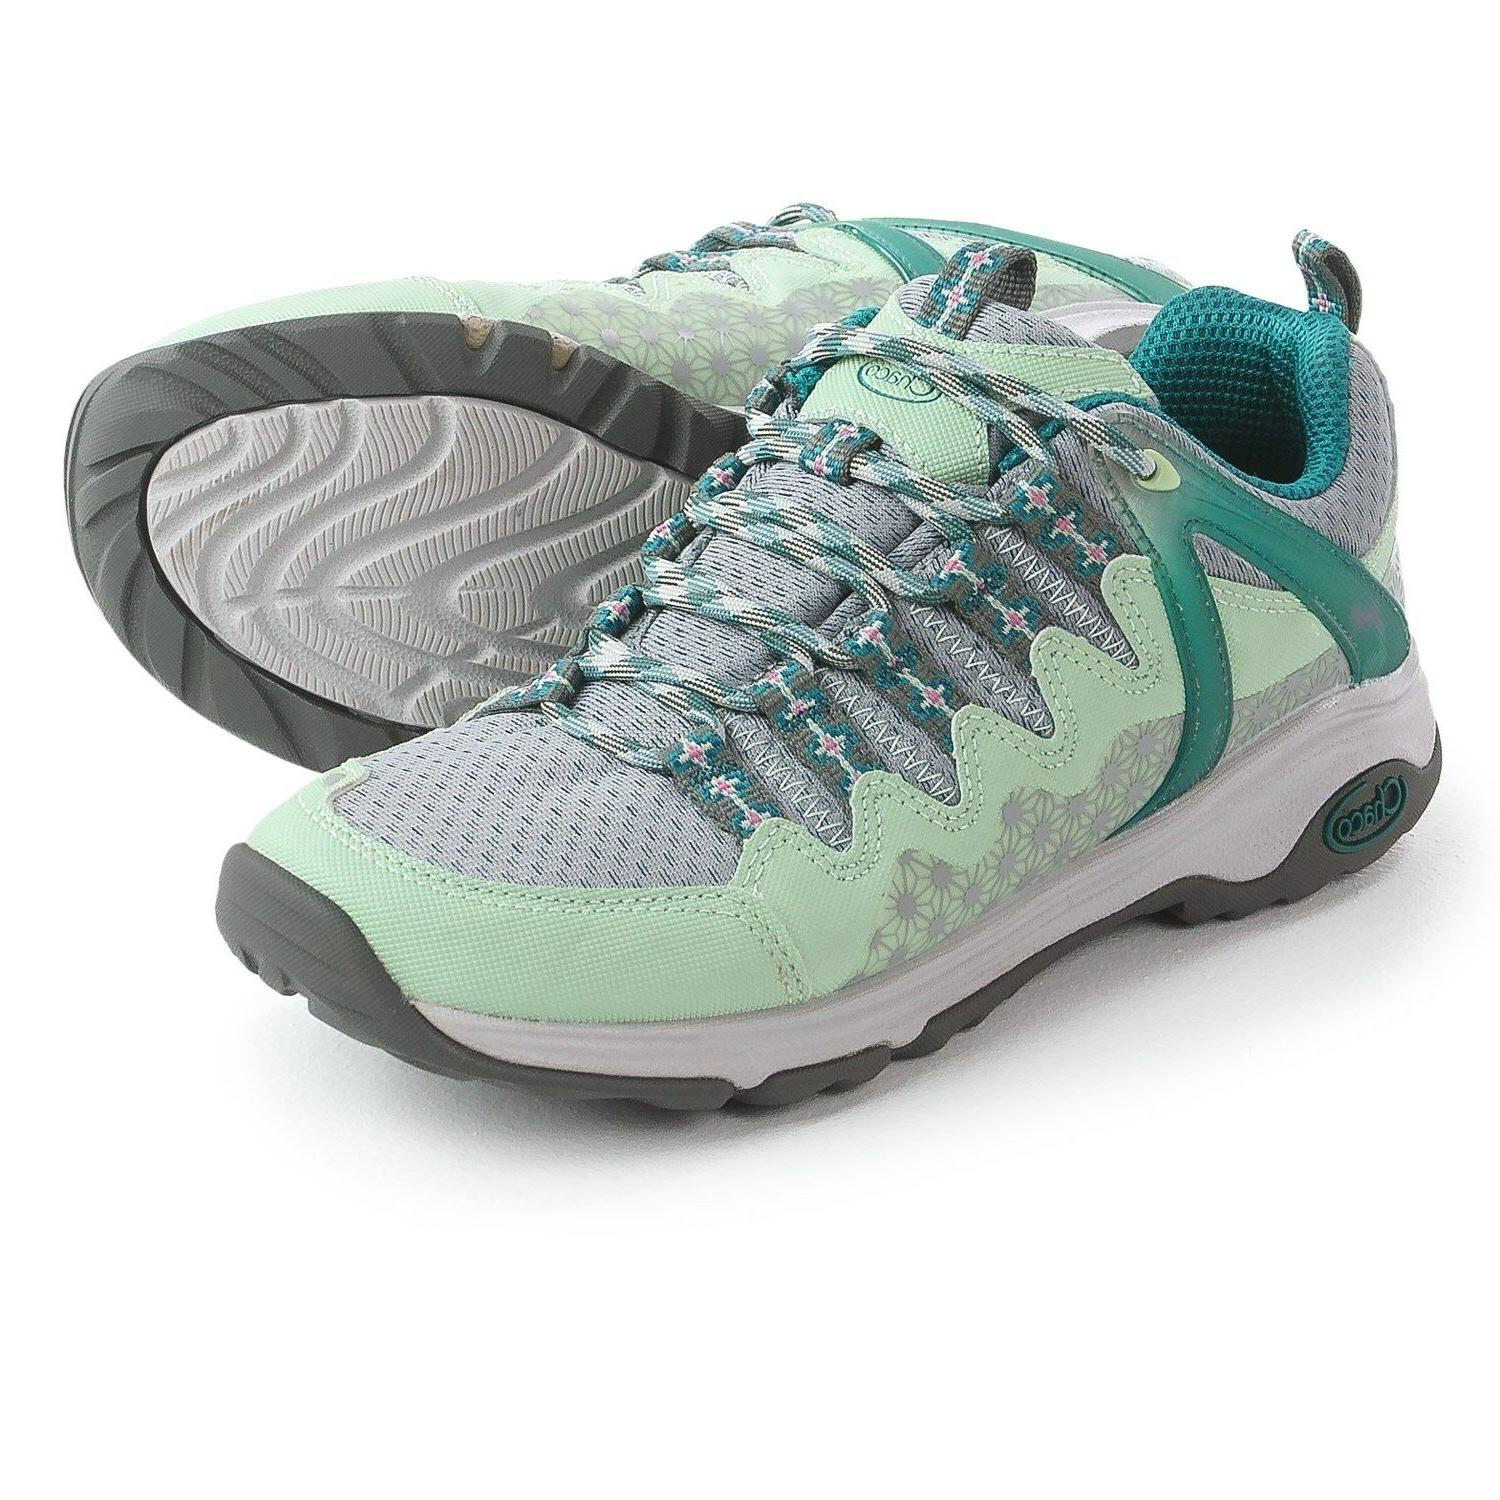 New Women`s Chaco OutCross Evo 4 Water Shoes Bayou US 7